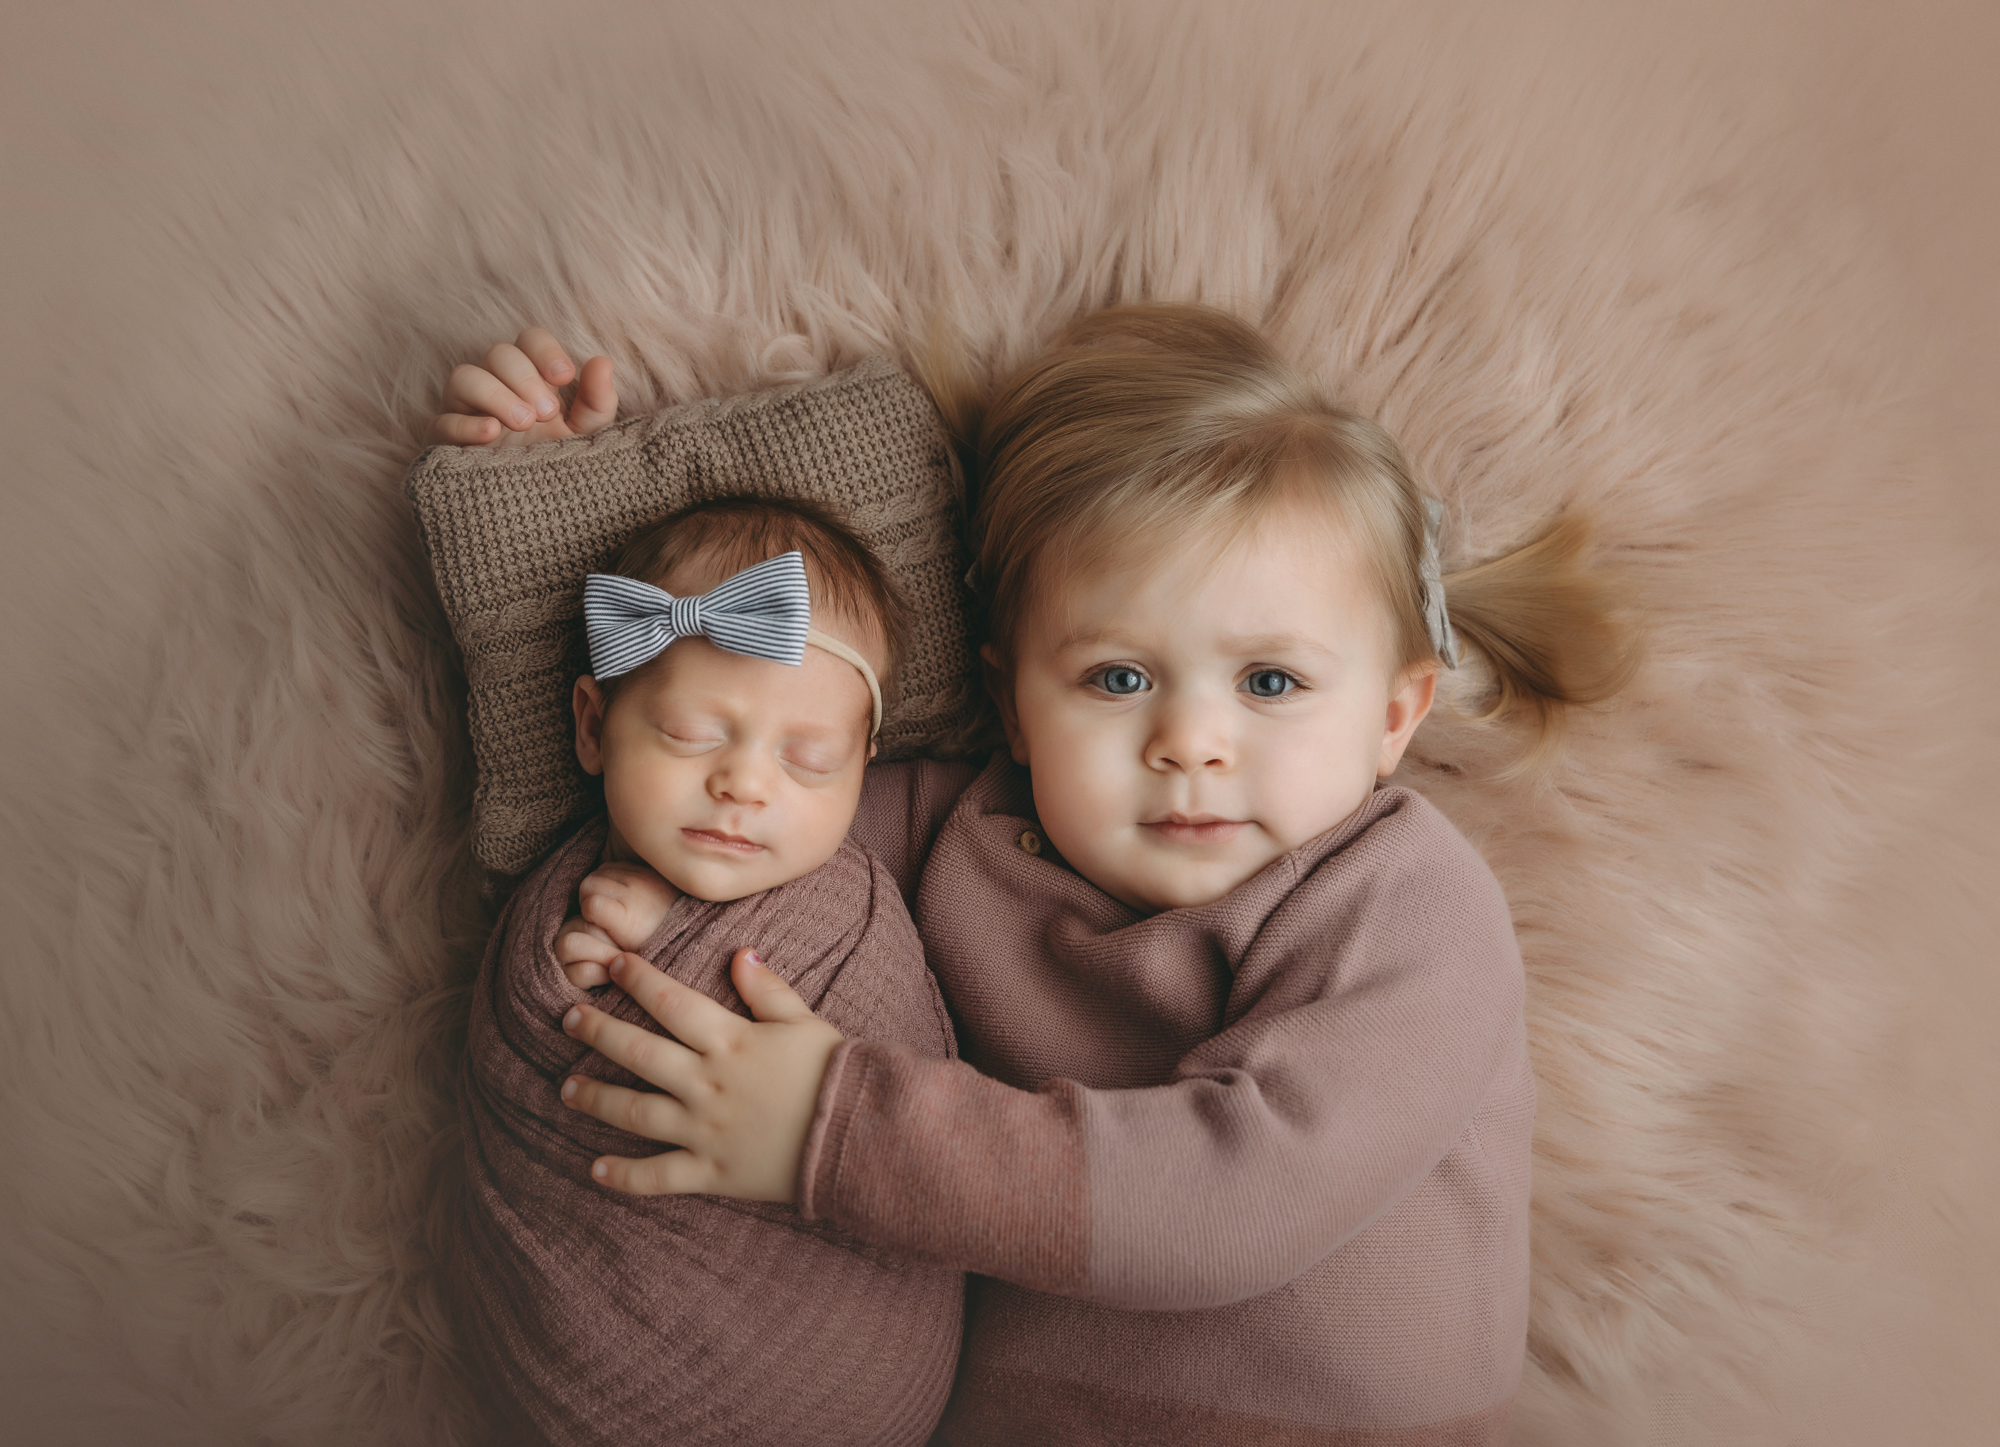 Sister and newborn portrait on furry pink blanket